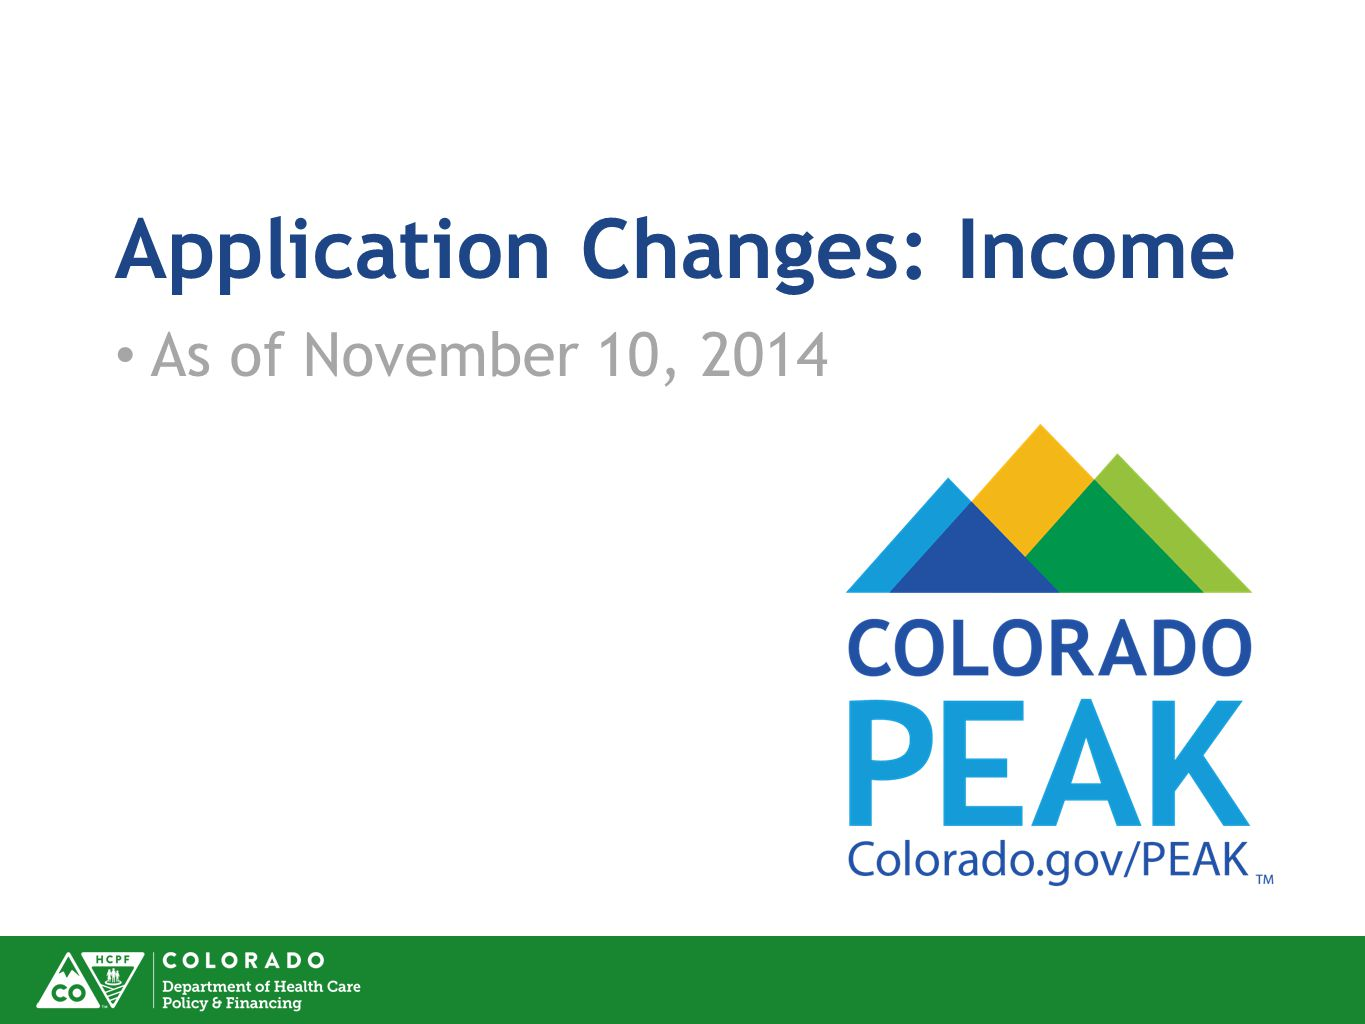 Application Changes: Income